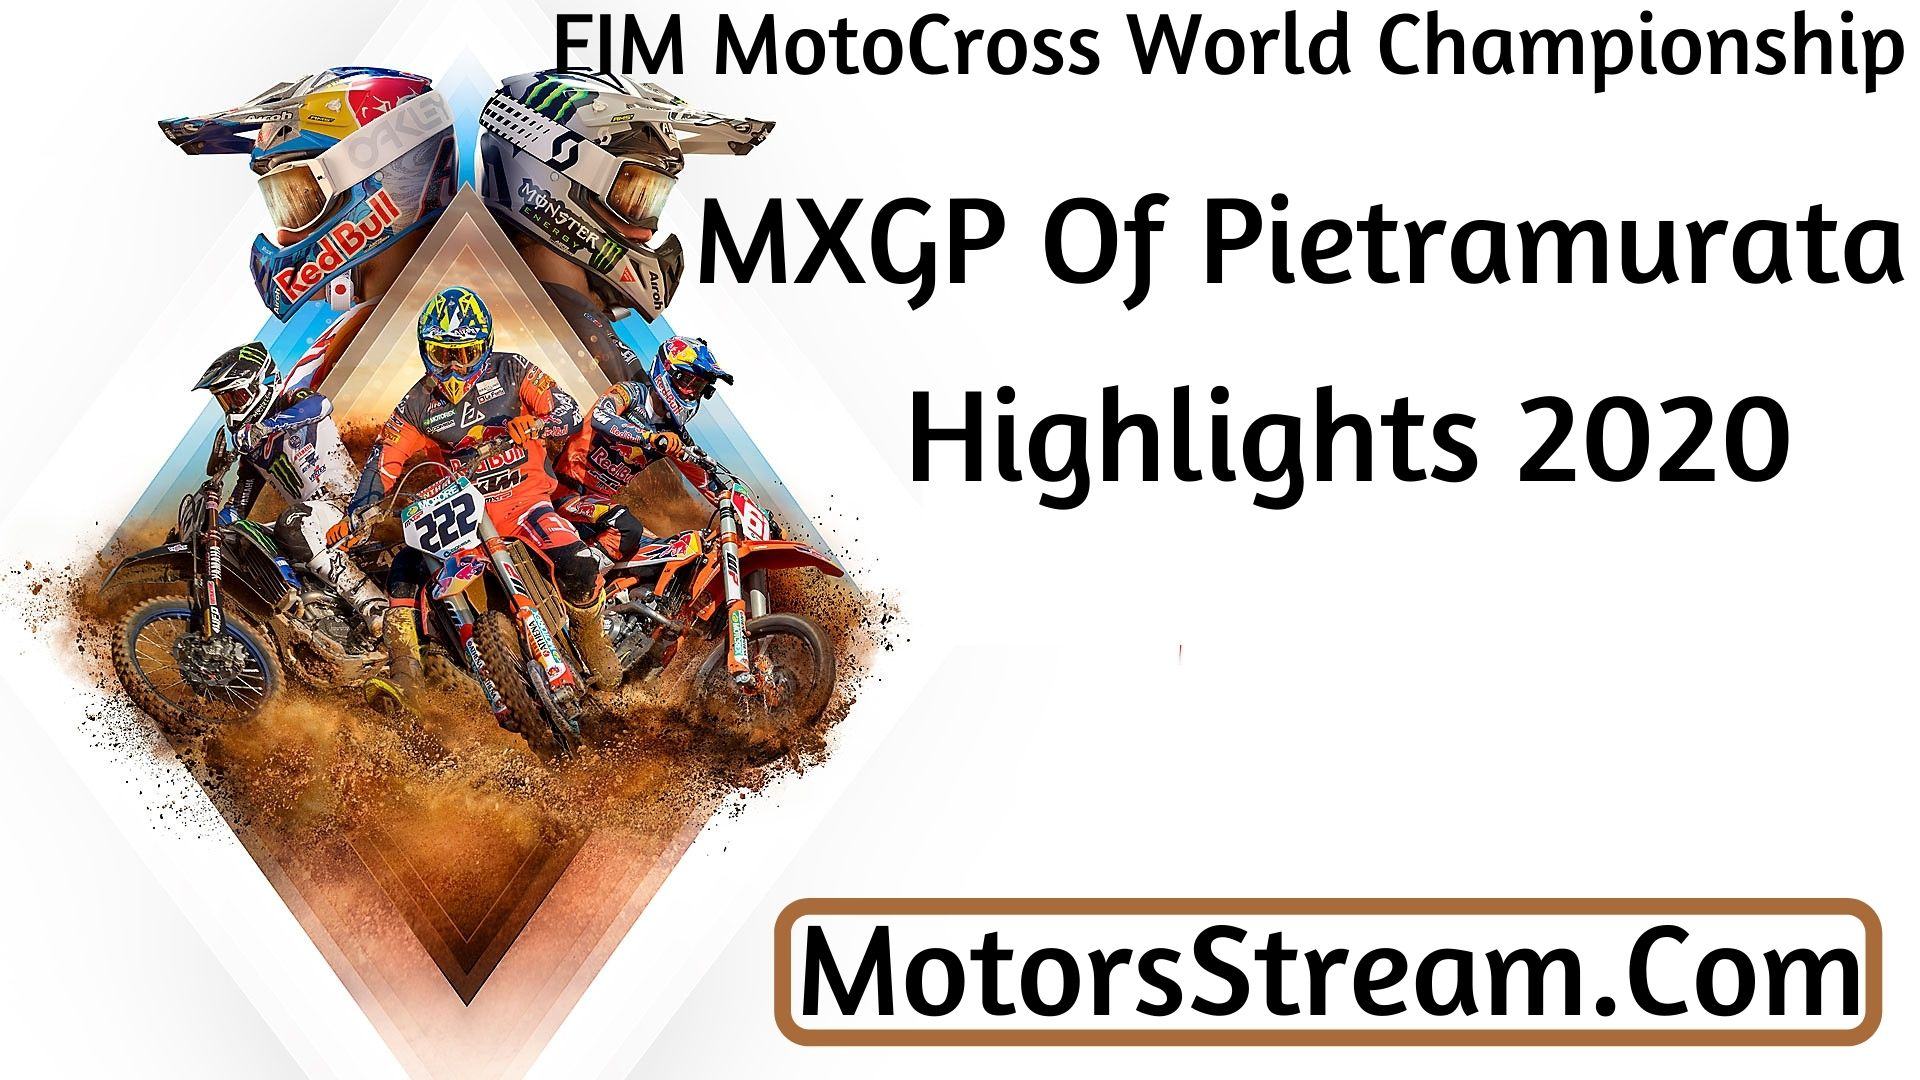 MXGP Of Pietramurata Highlights 2020